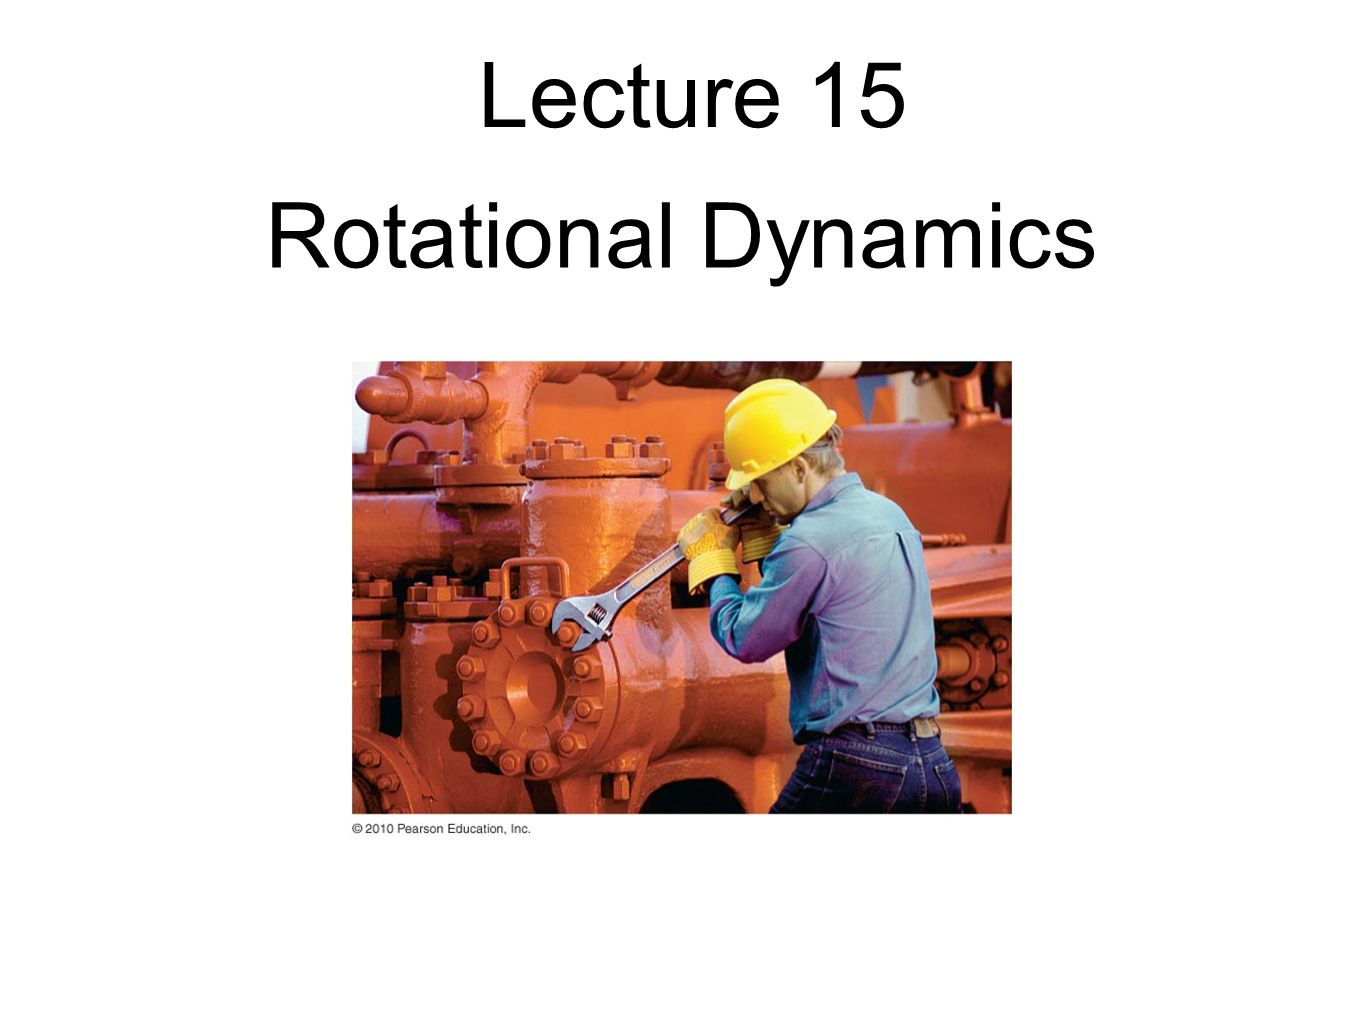 Lecture 15 Rotational Dynamics